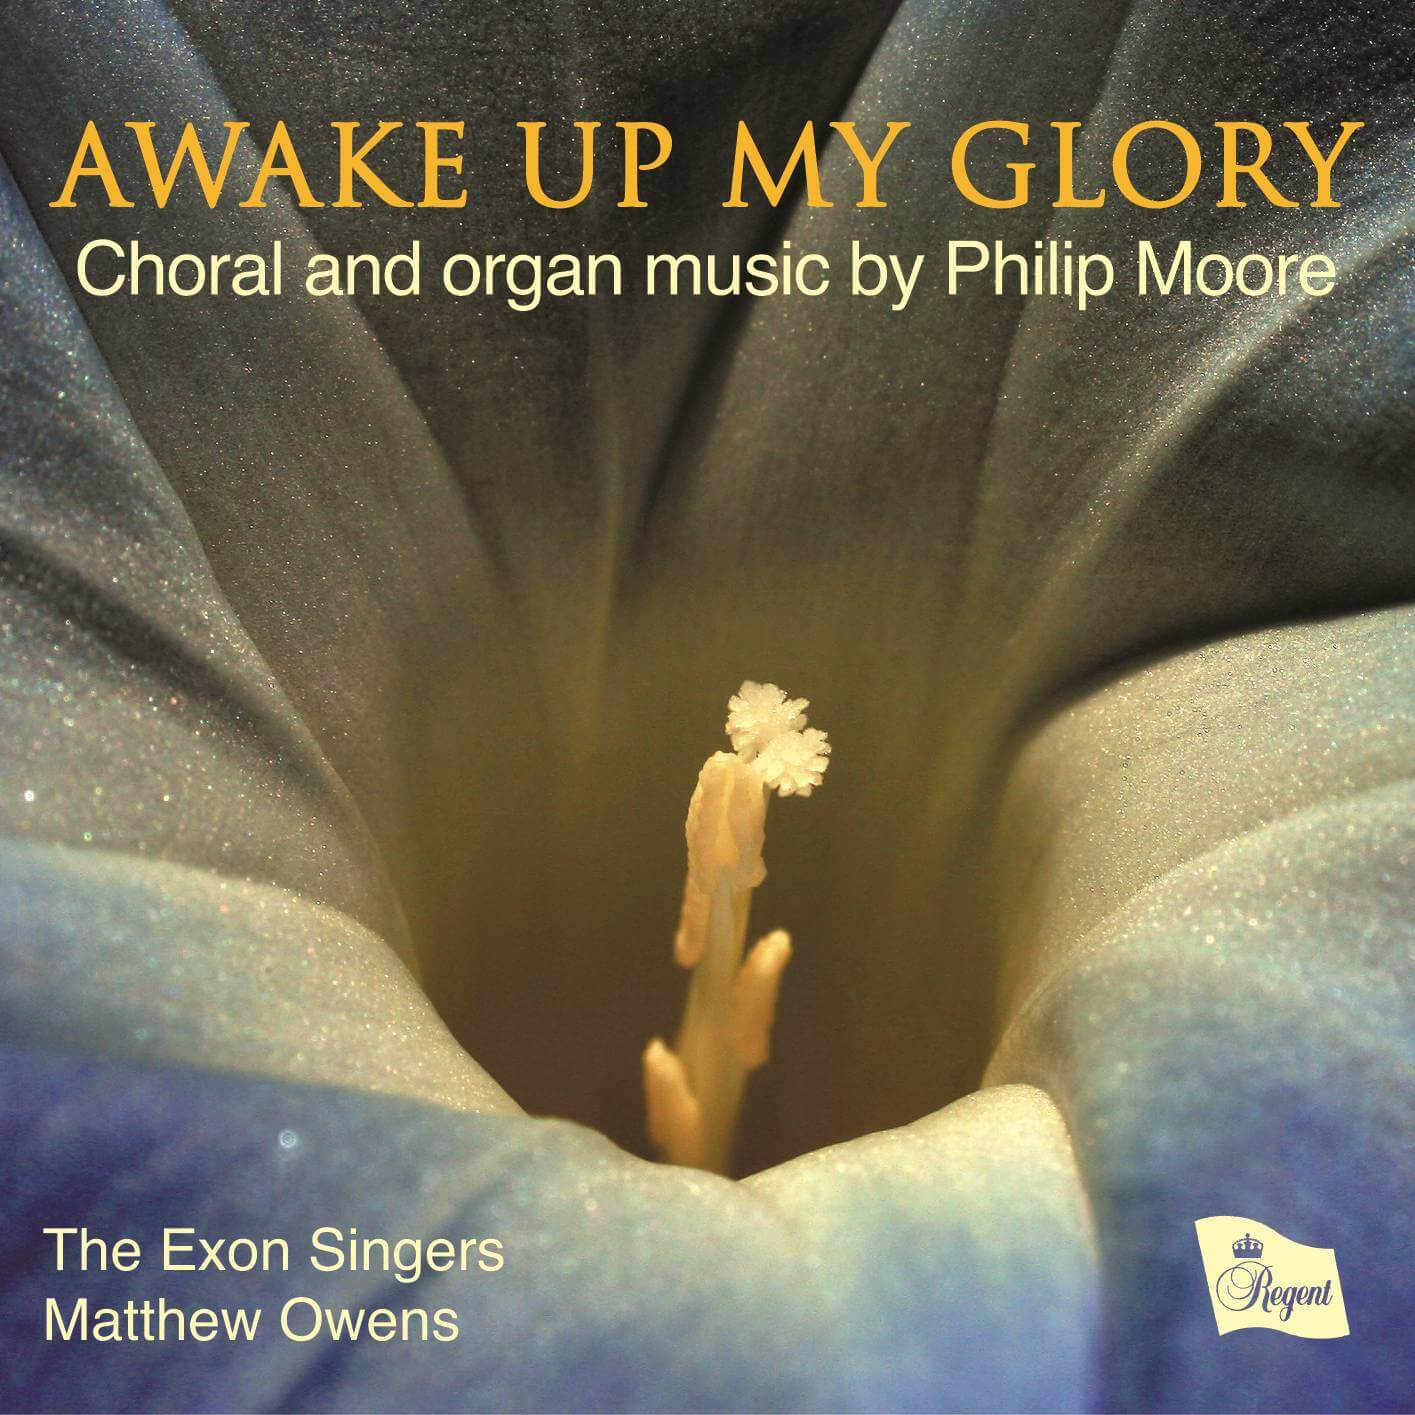 Awake up my glory - choral and organ music by Philip Moore